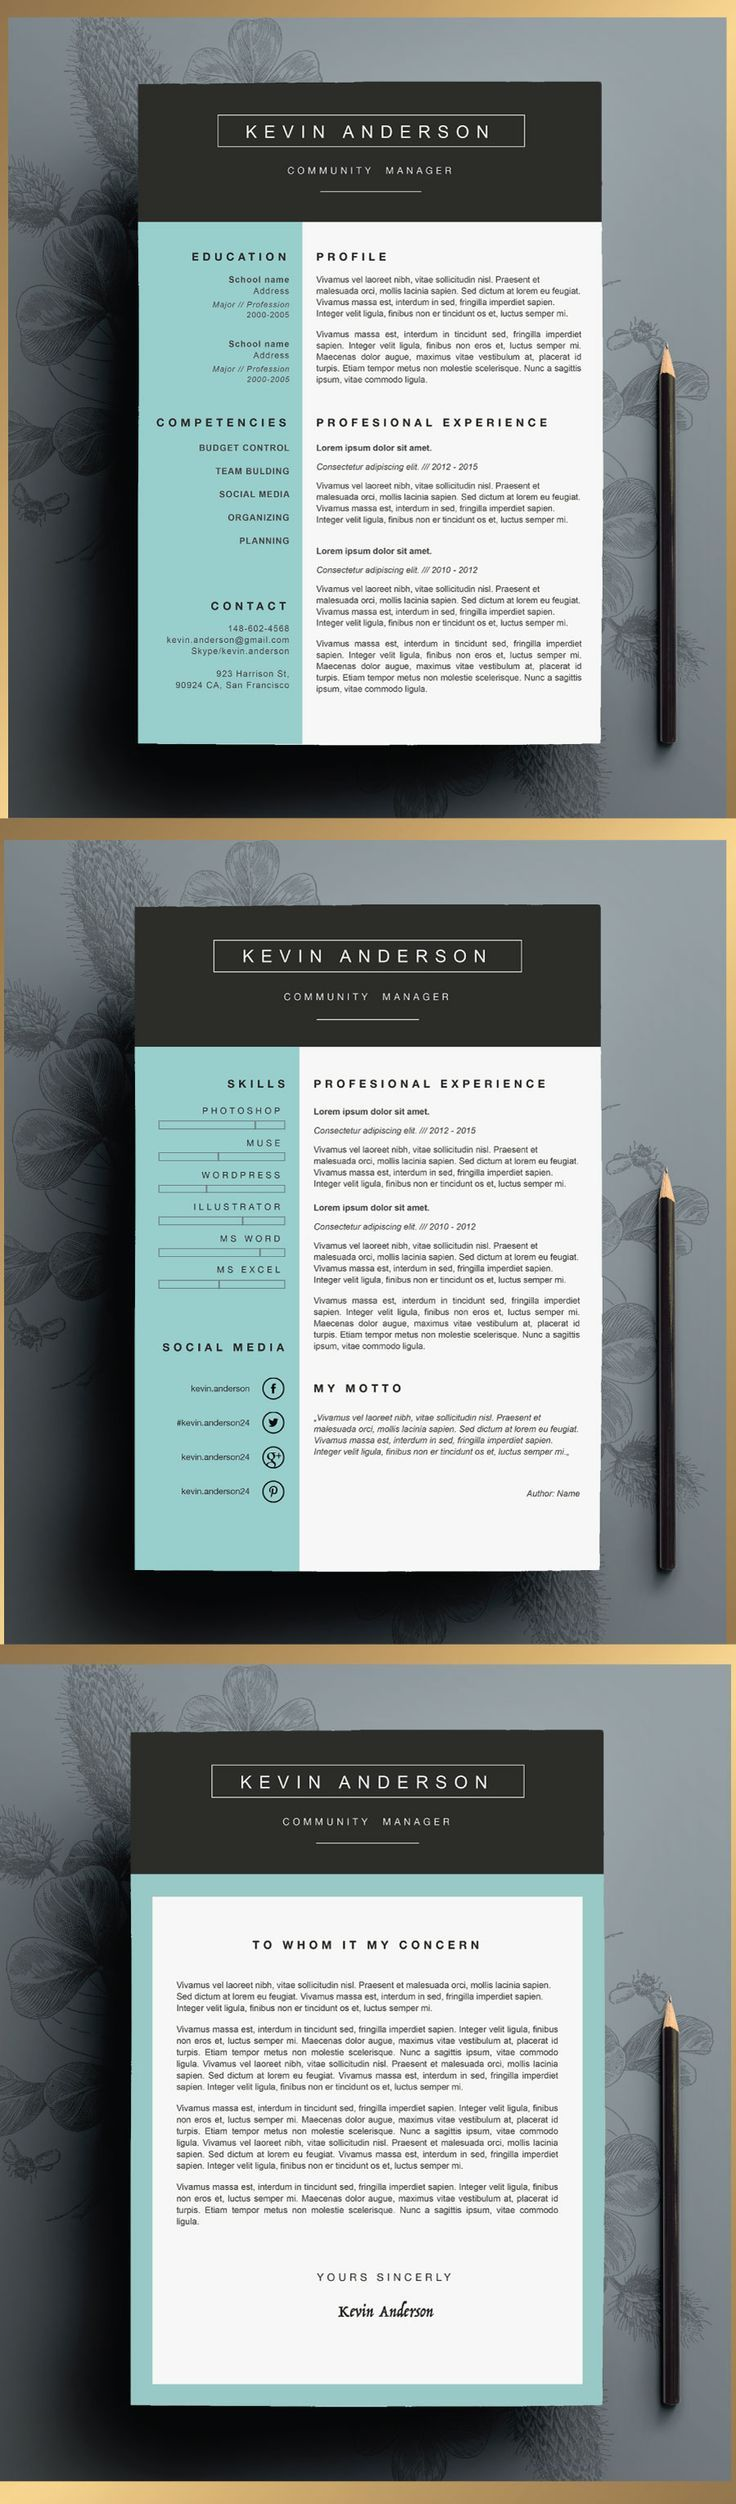 medical resume examples%0A Stylish Resume Template editable in Ms Word by CVdesign  You can find us on u